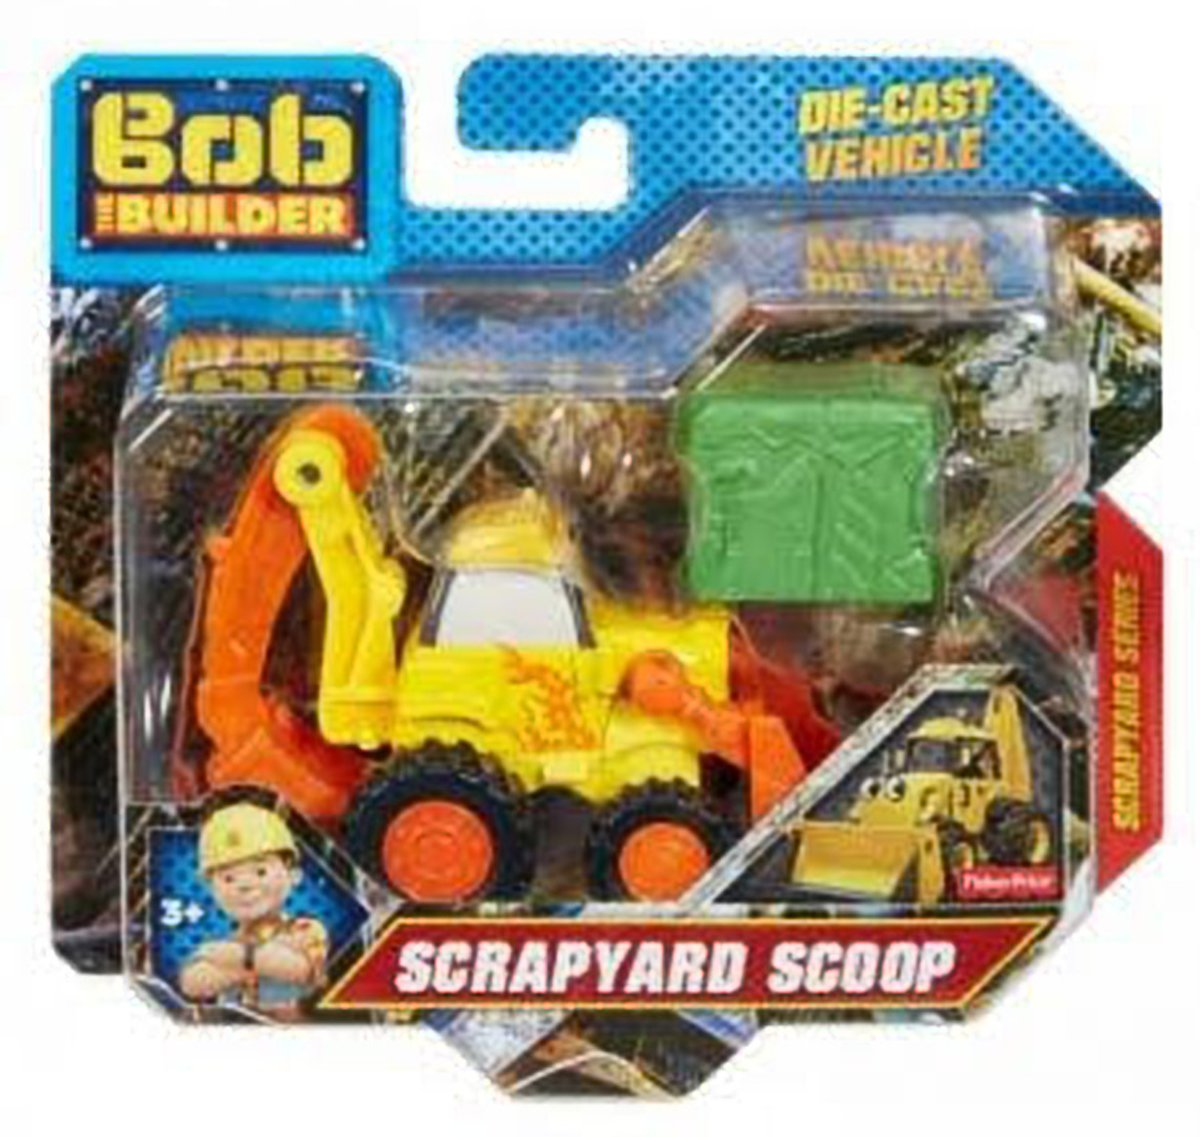 Bob de Bouwer Scapyard Scoop